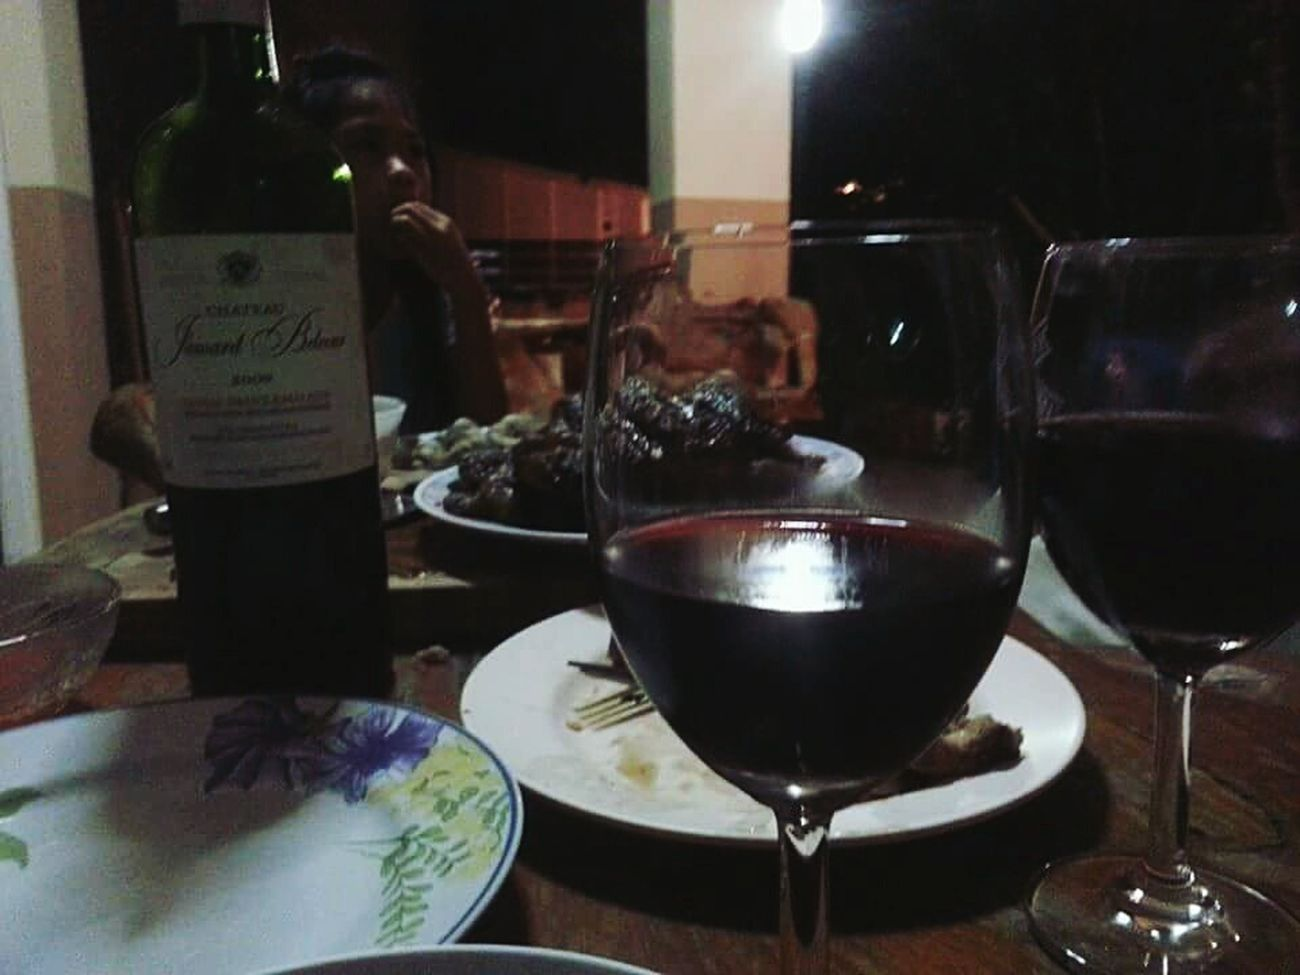 Having dinner with my lovely family BBQ Wine French Wine Family Time What's For Dinner?